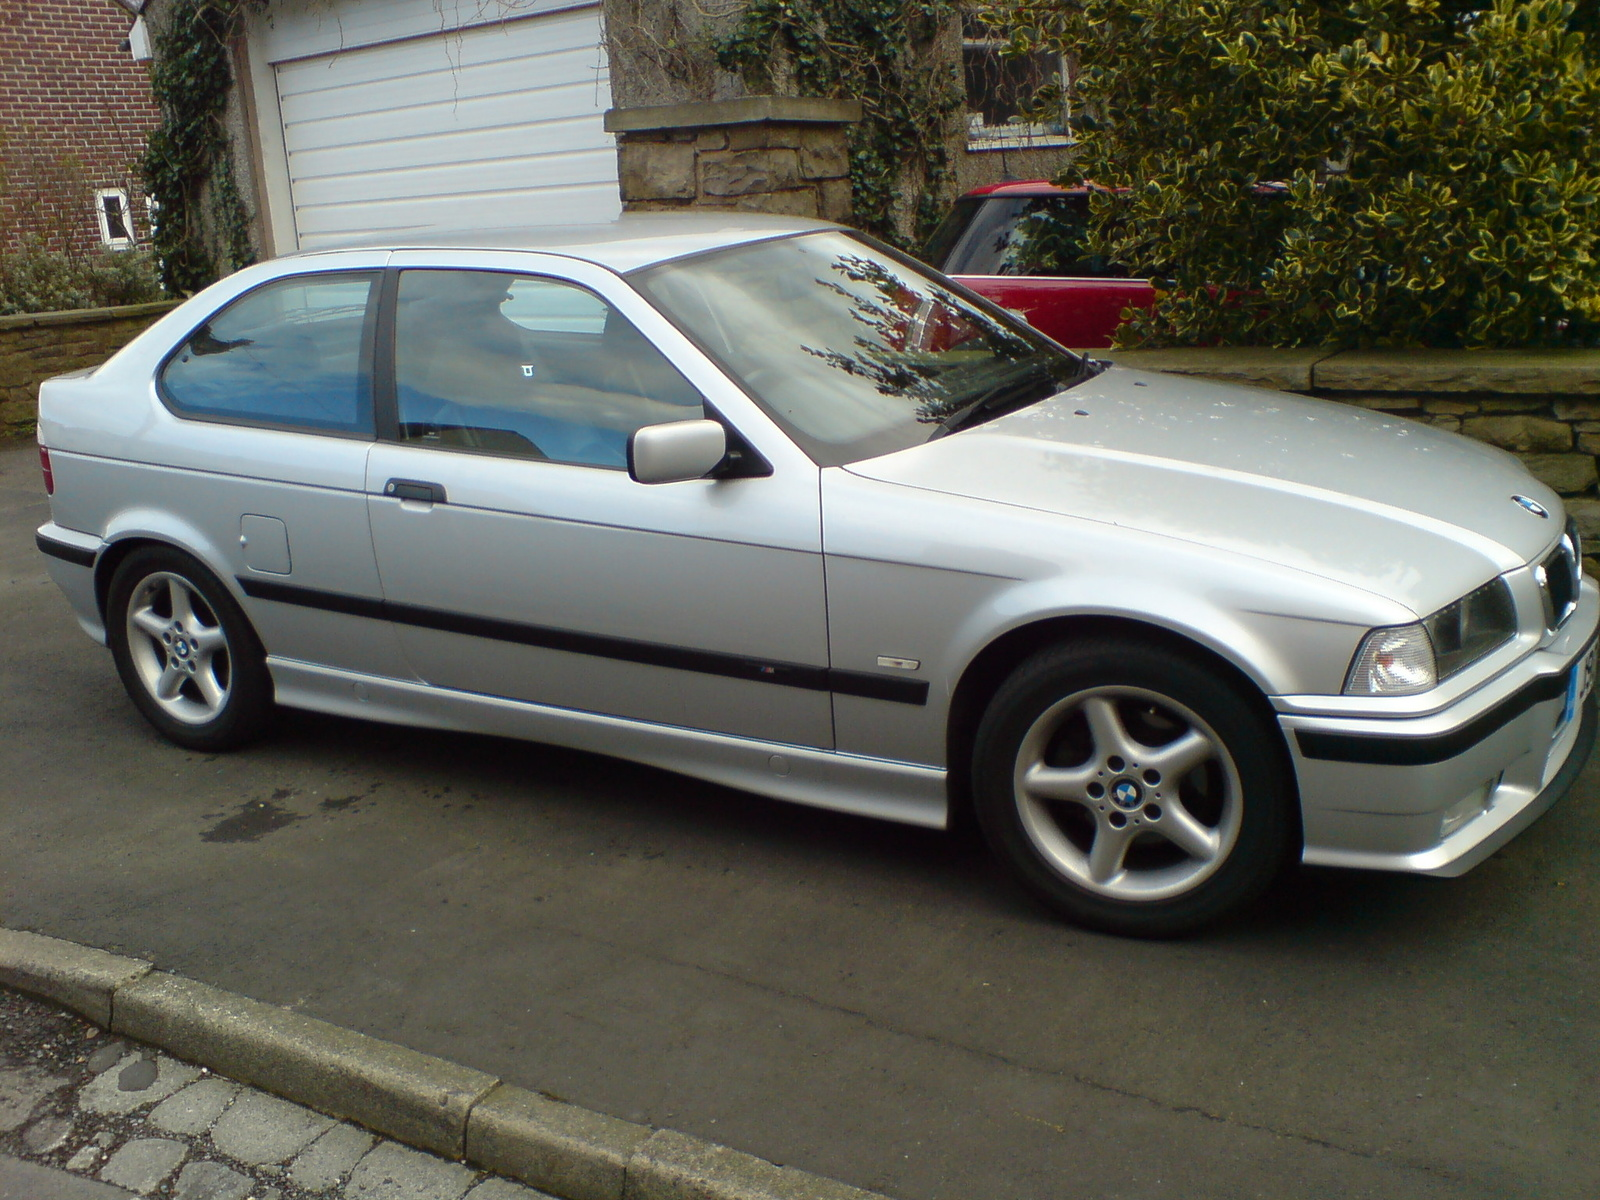 Bmw 323is 1999 Review Amazing Pictures And Images Look